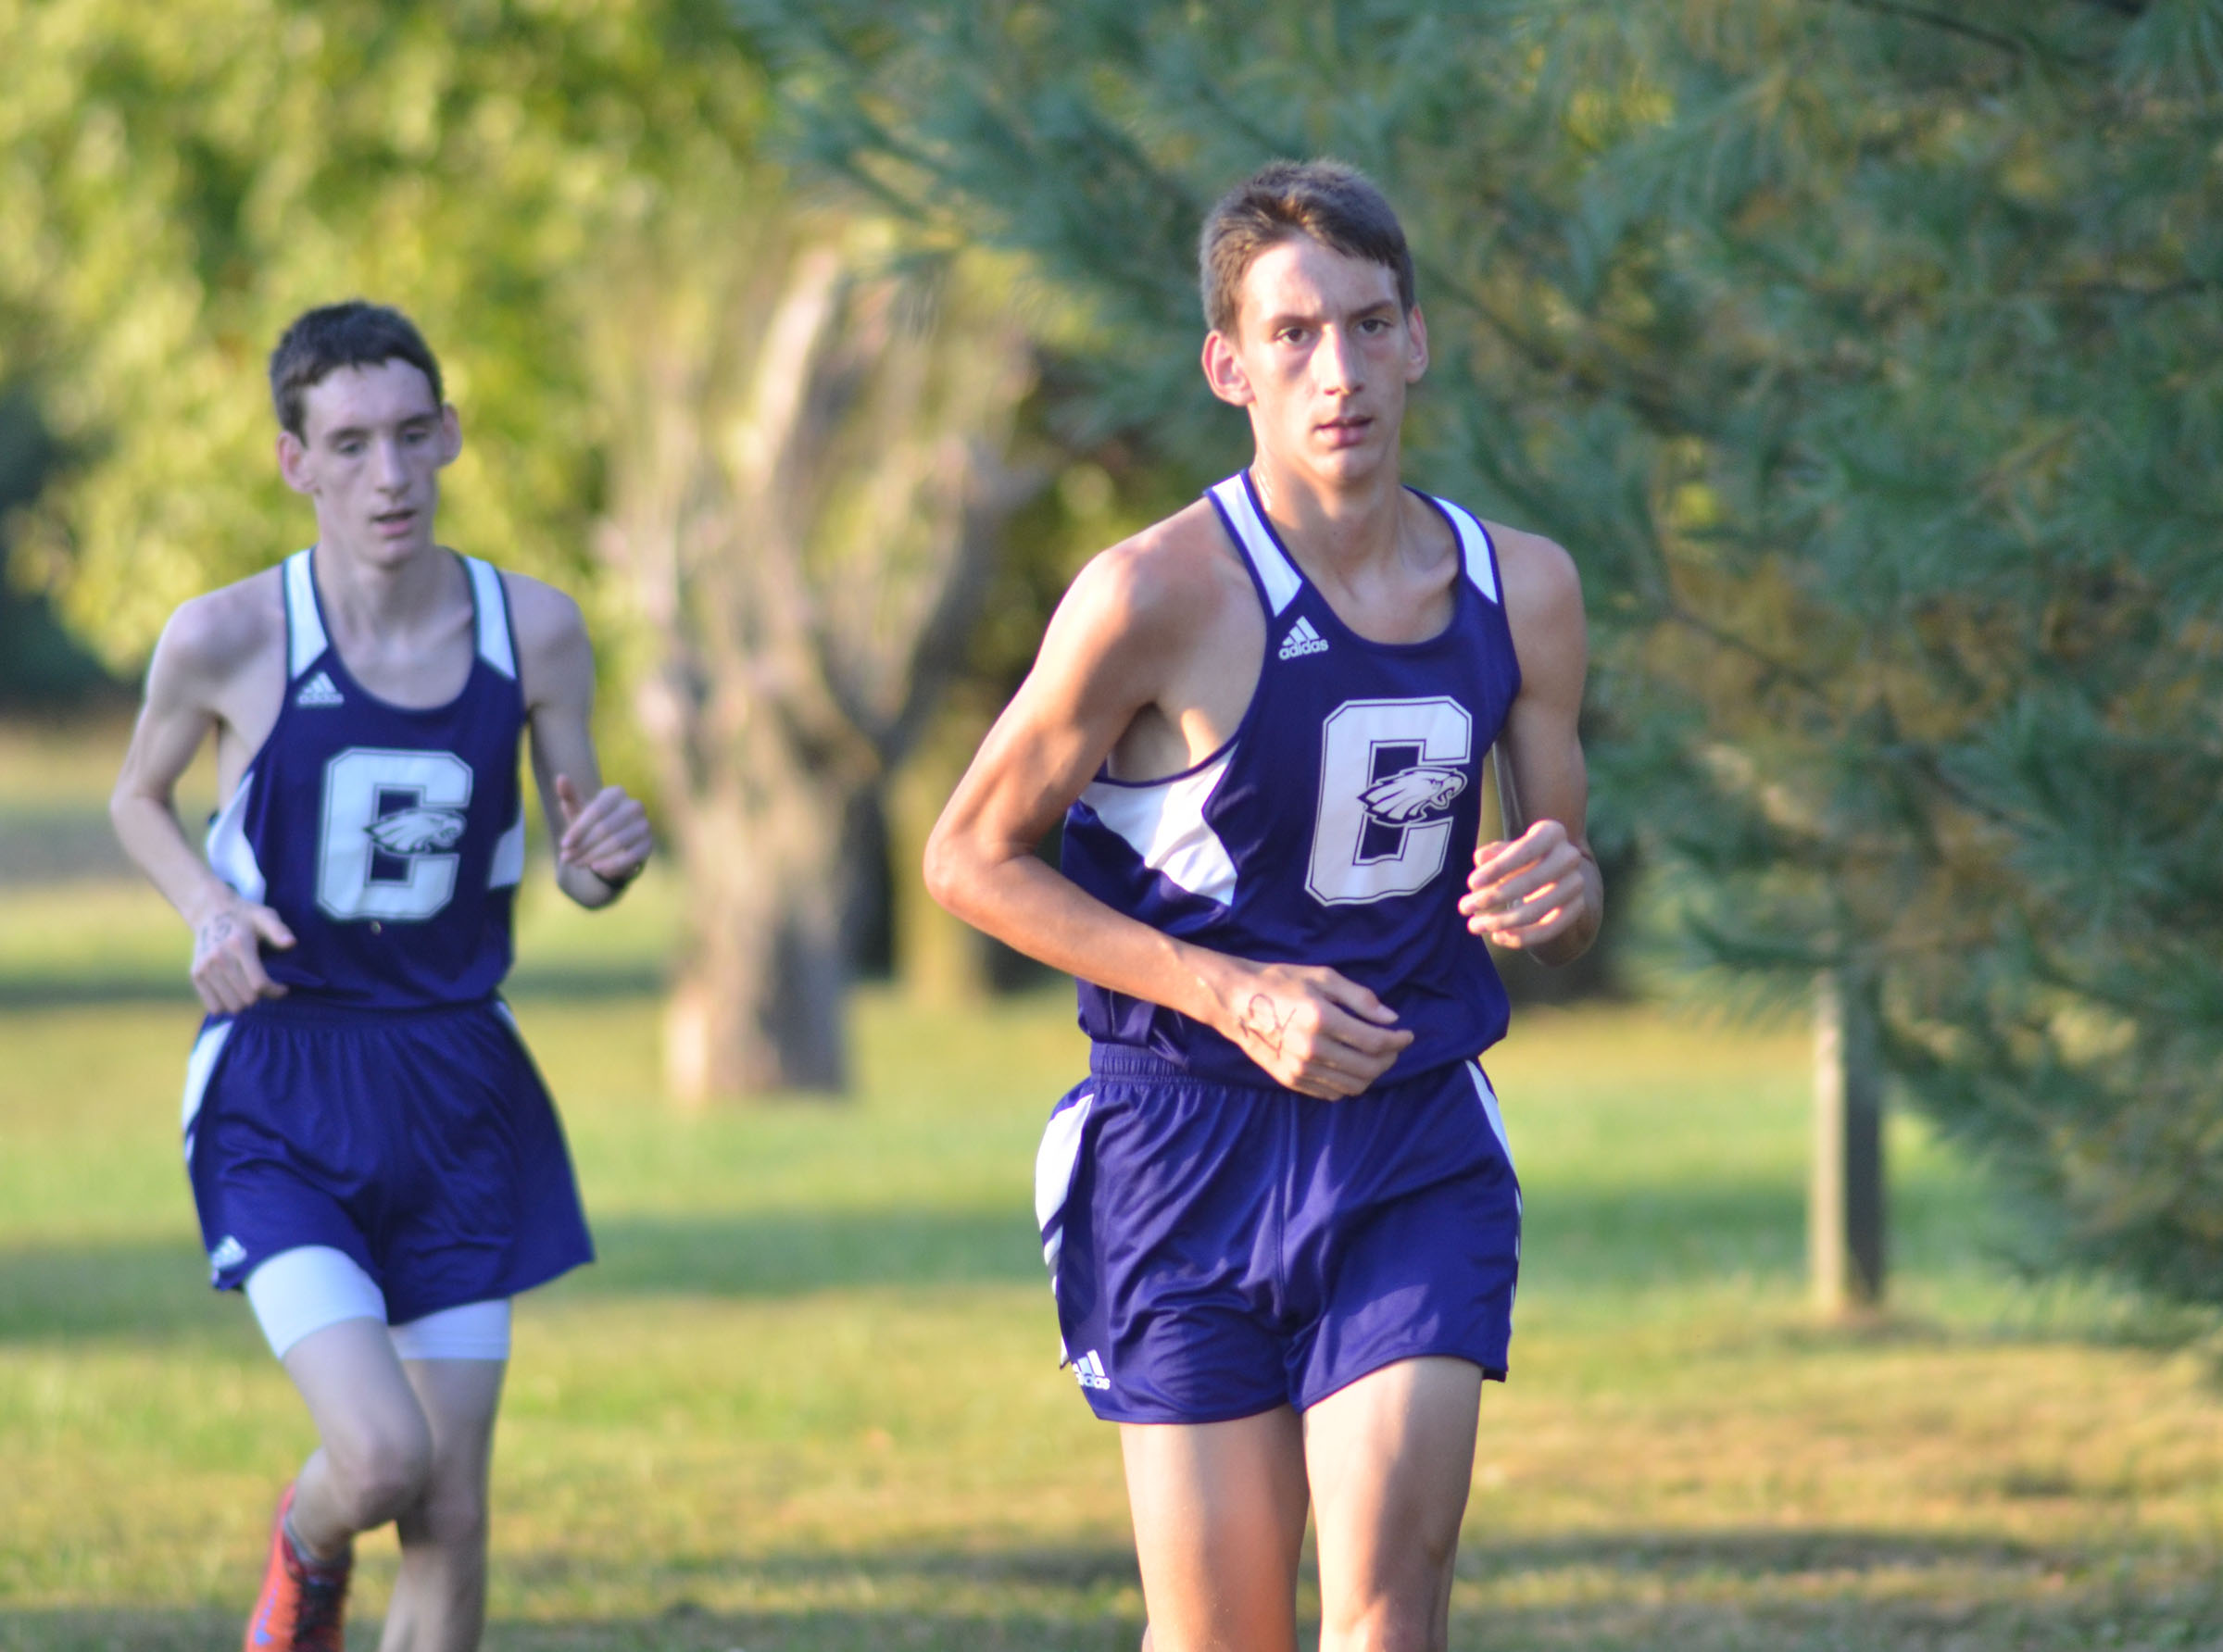 CHS sophomores Ian McAninch, left, and his two brother Evan McAninch run.